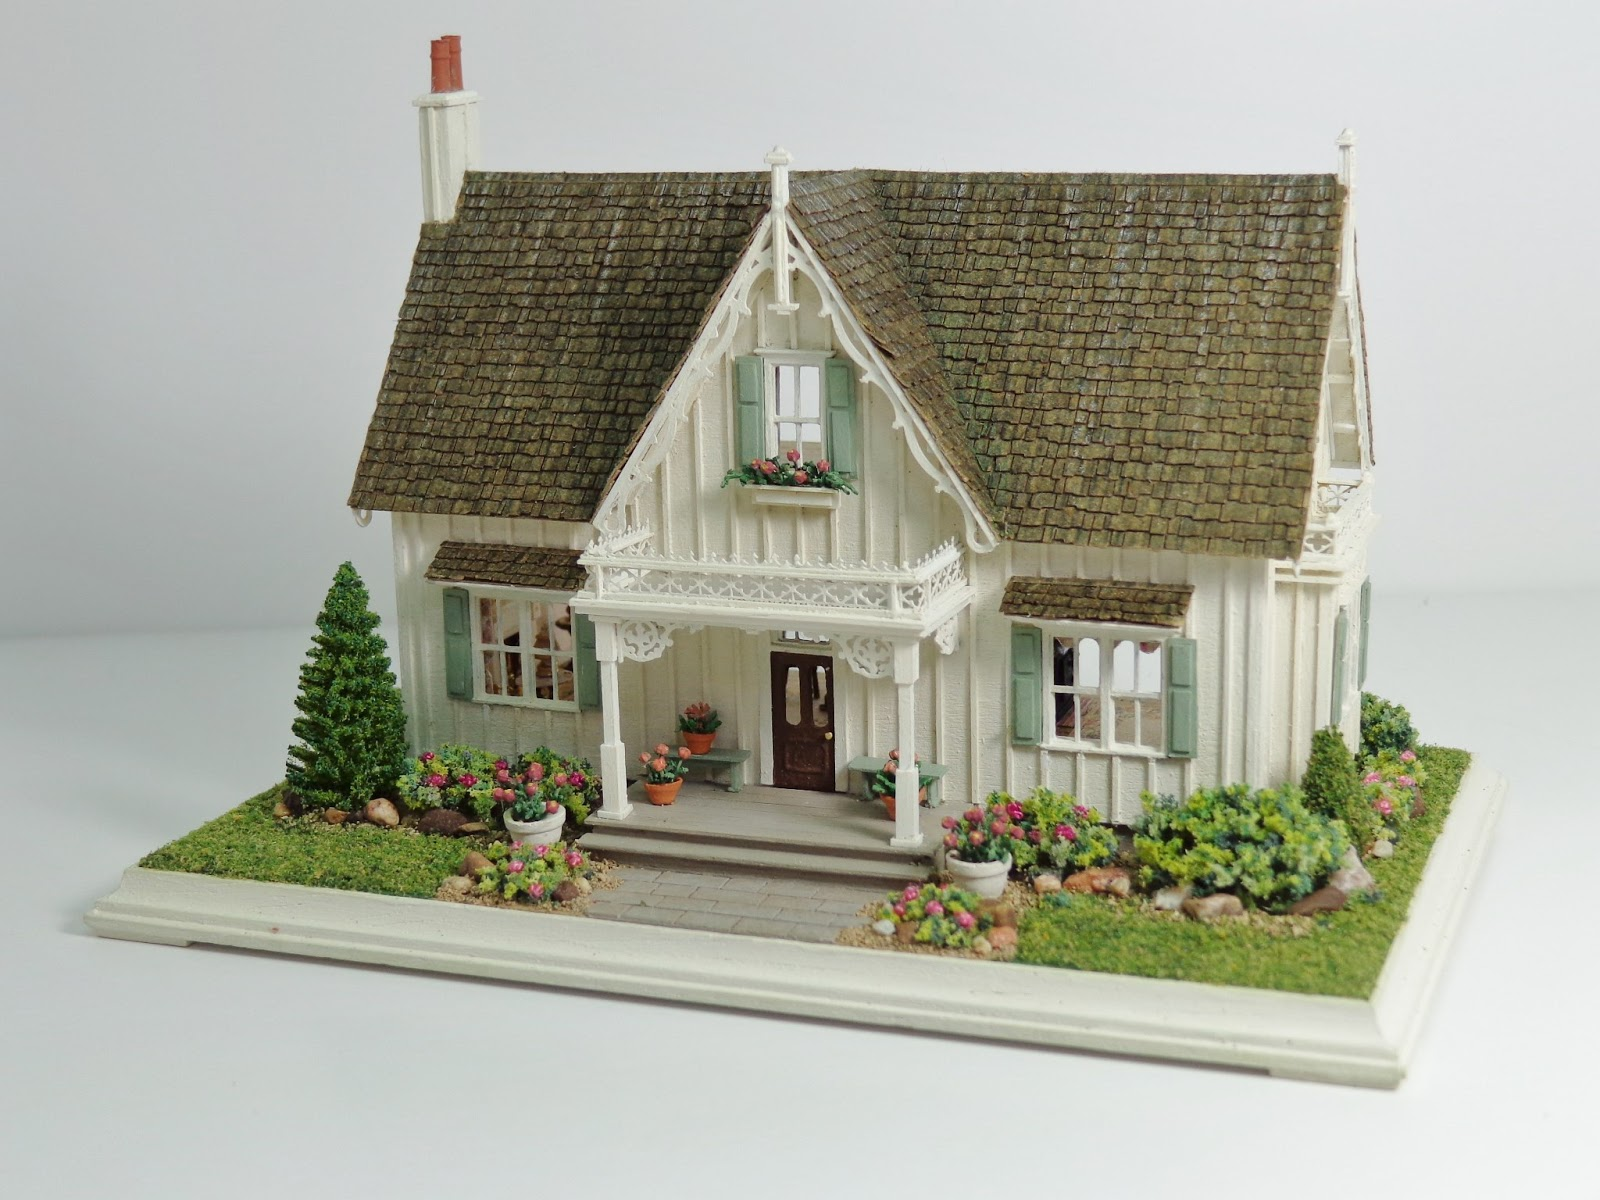 Miniature miniatures nell corkin carpenter gothic for Mini bungalow